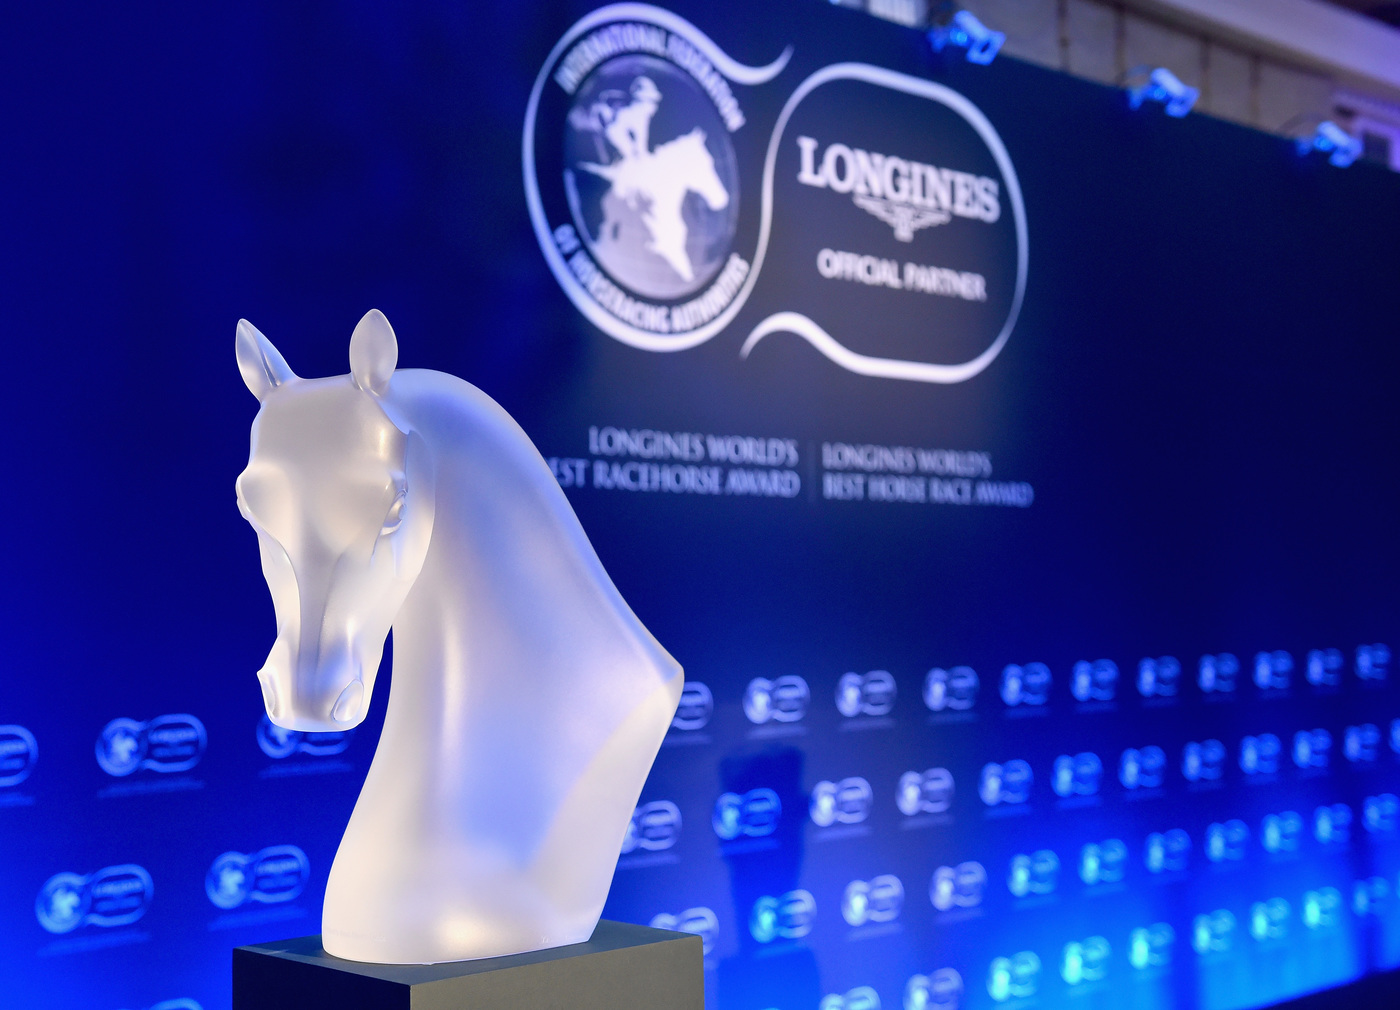 Longines Flat Racing Event: Longines Awards To Be Live Streamed, Shown on Facebook Live 1